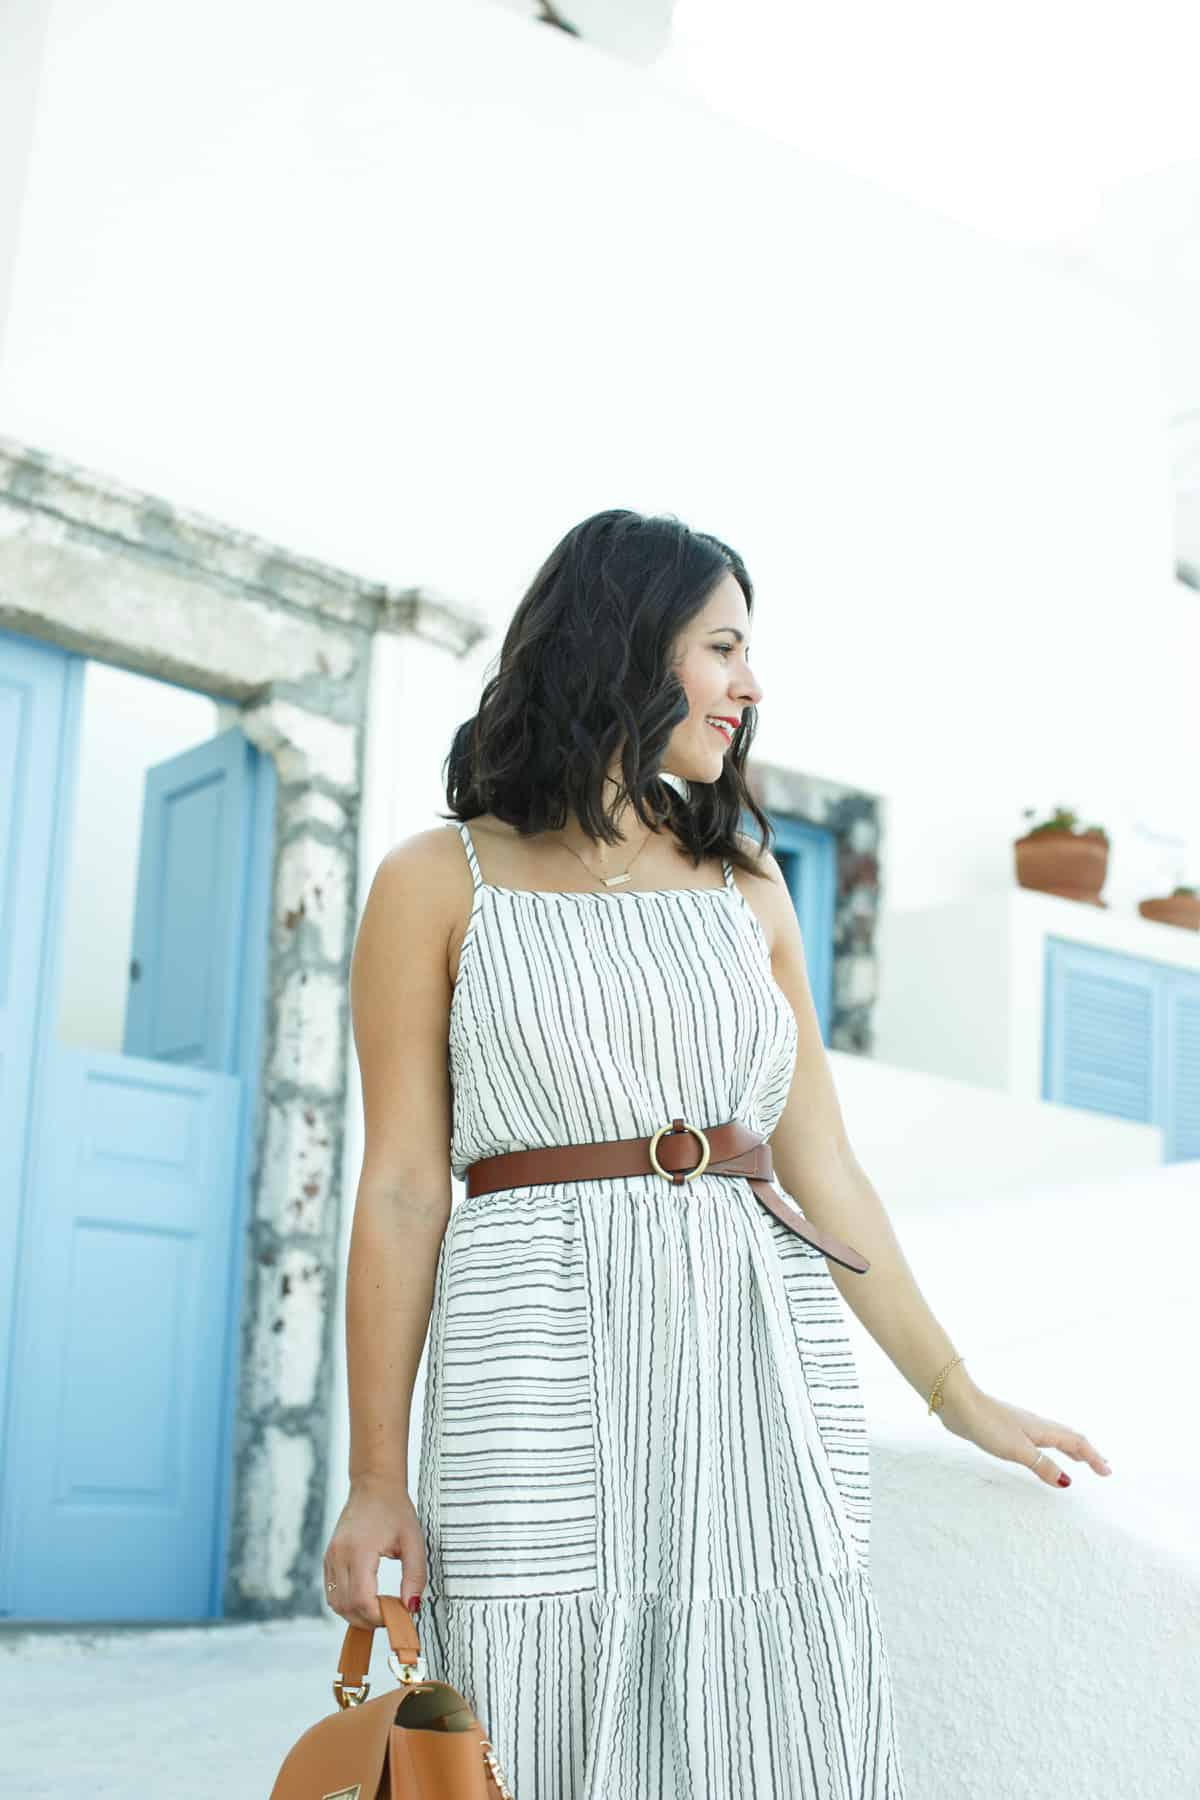 Two Arrows Midi Dress with cutout detail - What to wear on vacation, Greece outfit ideas - My Style Vita @mystylevita